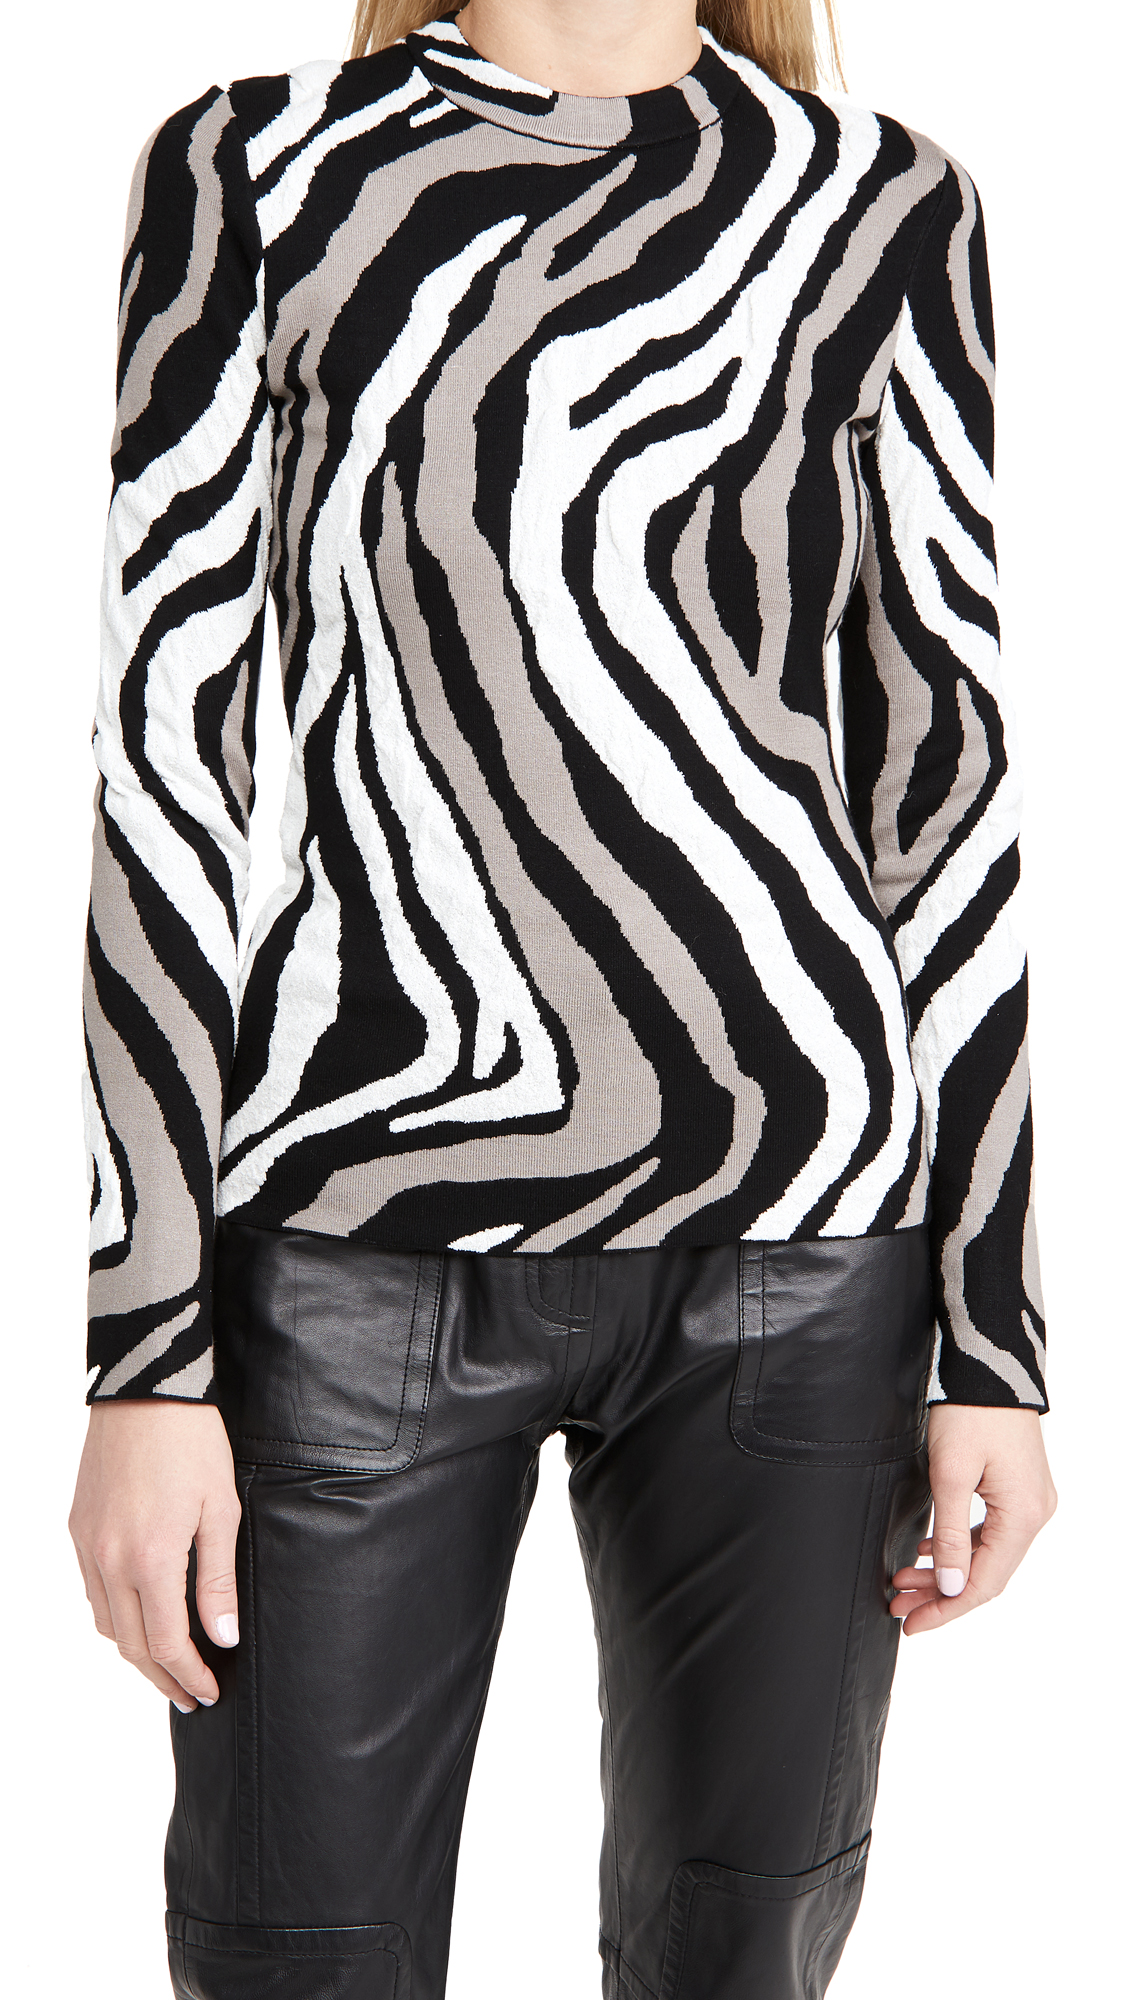 Proenza Schouler White Label Zebra Long Sleeve Top